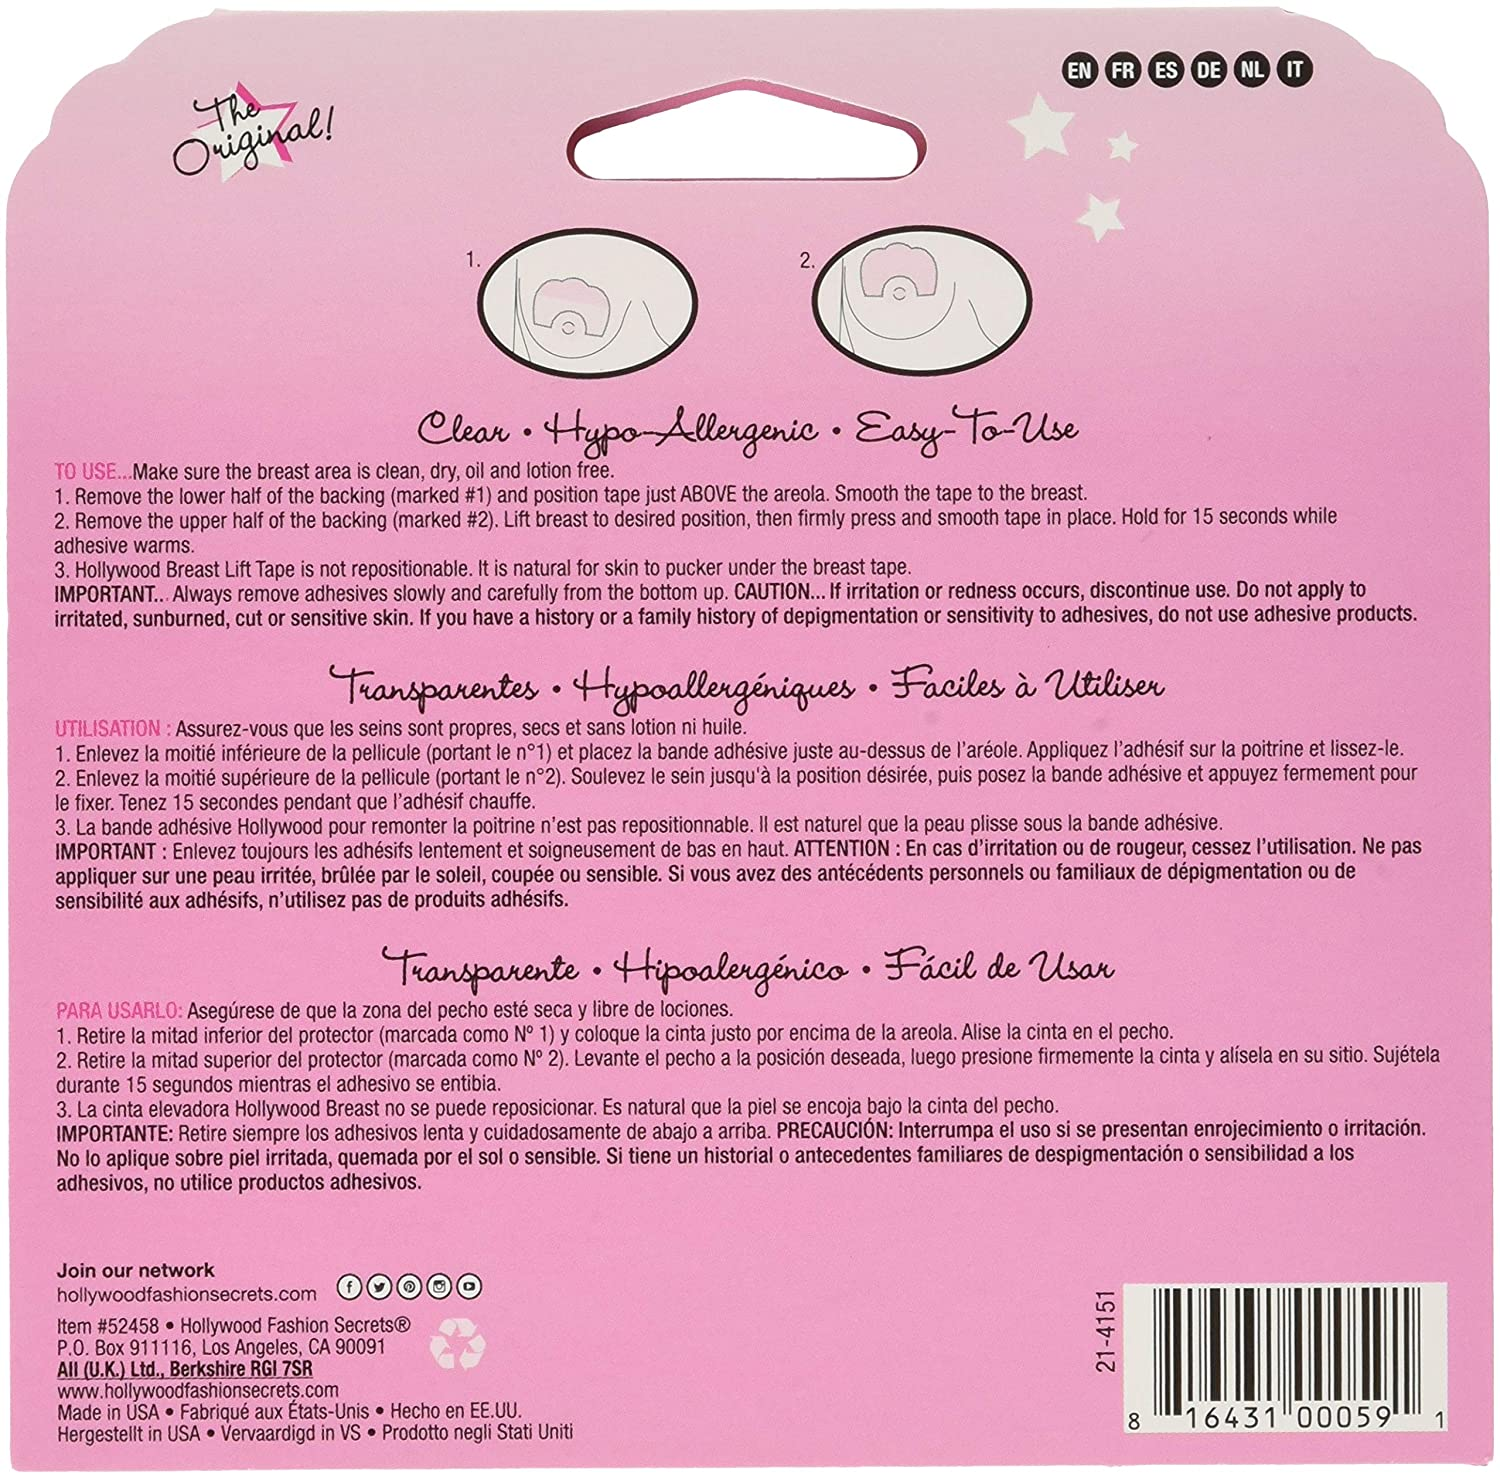 Amazon.com: Hollywood Fashion Secrets Breast Lift Tape: Beauty